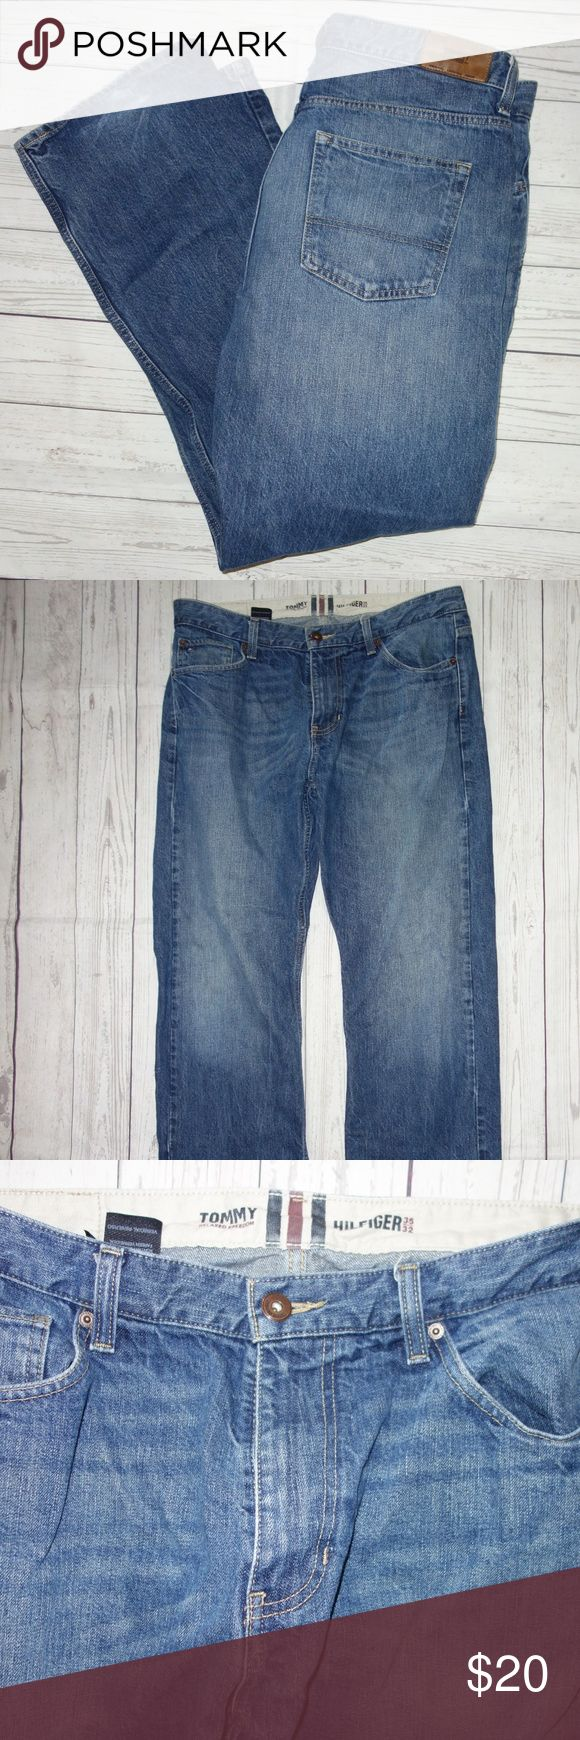 Tommy Hilfiger Relaxed Freedom Jeans Men Tommy Hilfiger Relaxed Freedom Jeans Men 35 32 Med Blue Trendy Fade Preowned in good condition Button and zip fly Trendy fade  Broken in and comfy but no stains, rips or tears Mild cuff wear - see photos Waist is 35 Inseam is 32 Classic 5 pocket styling Thank you for looking! Tommy Hilfiger Jeans Relaxed